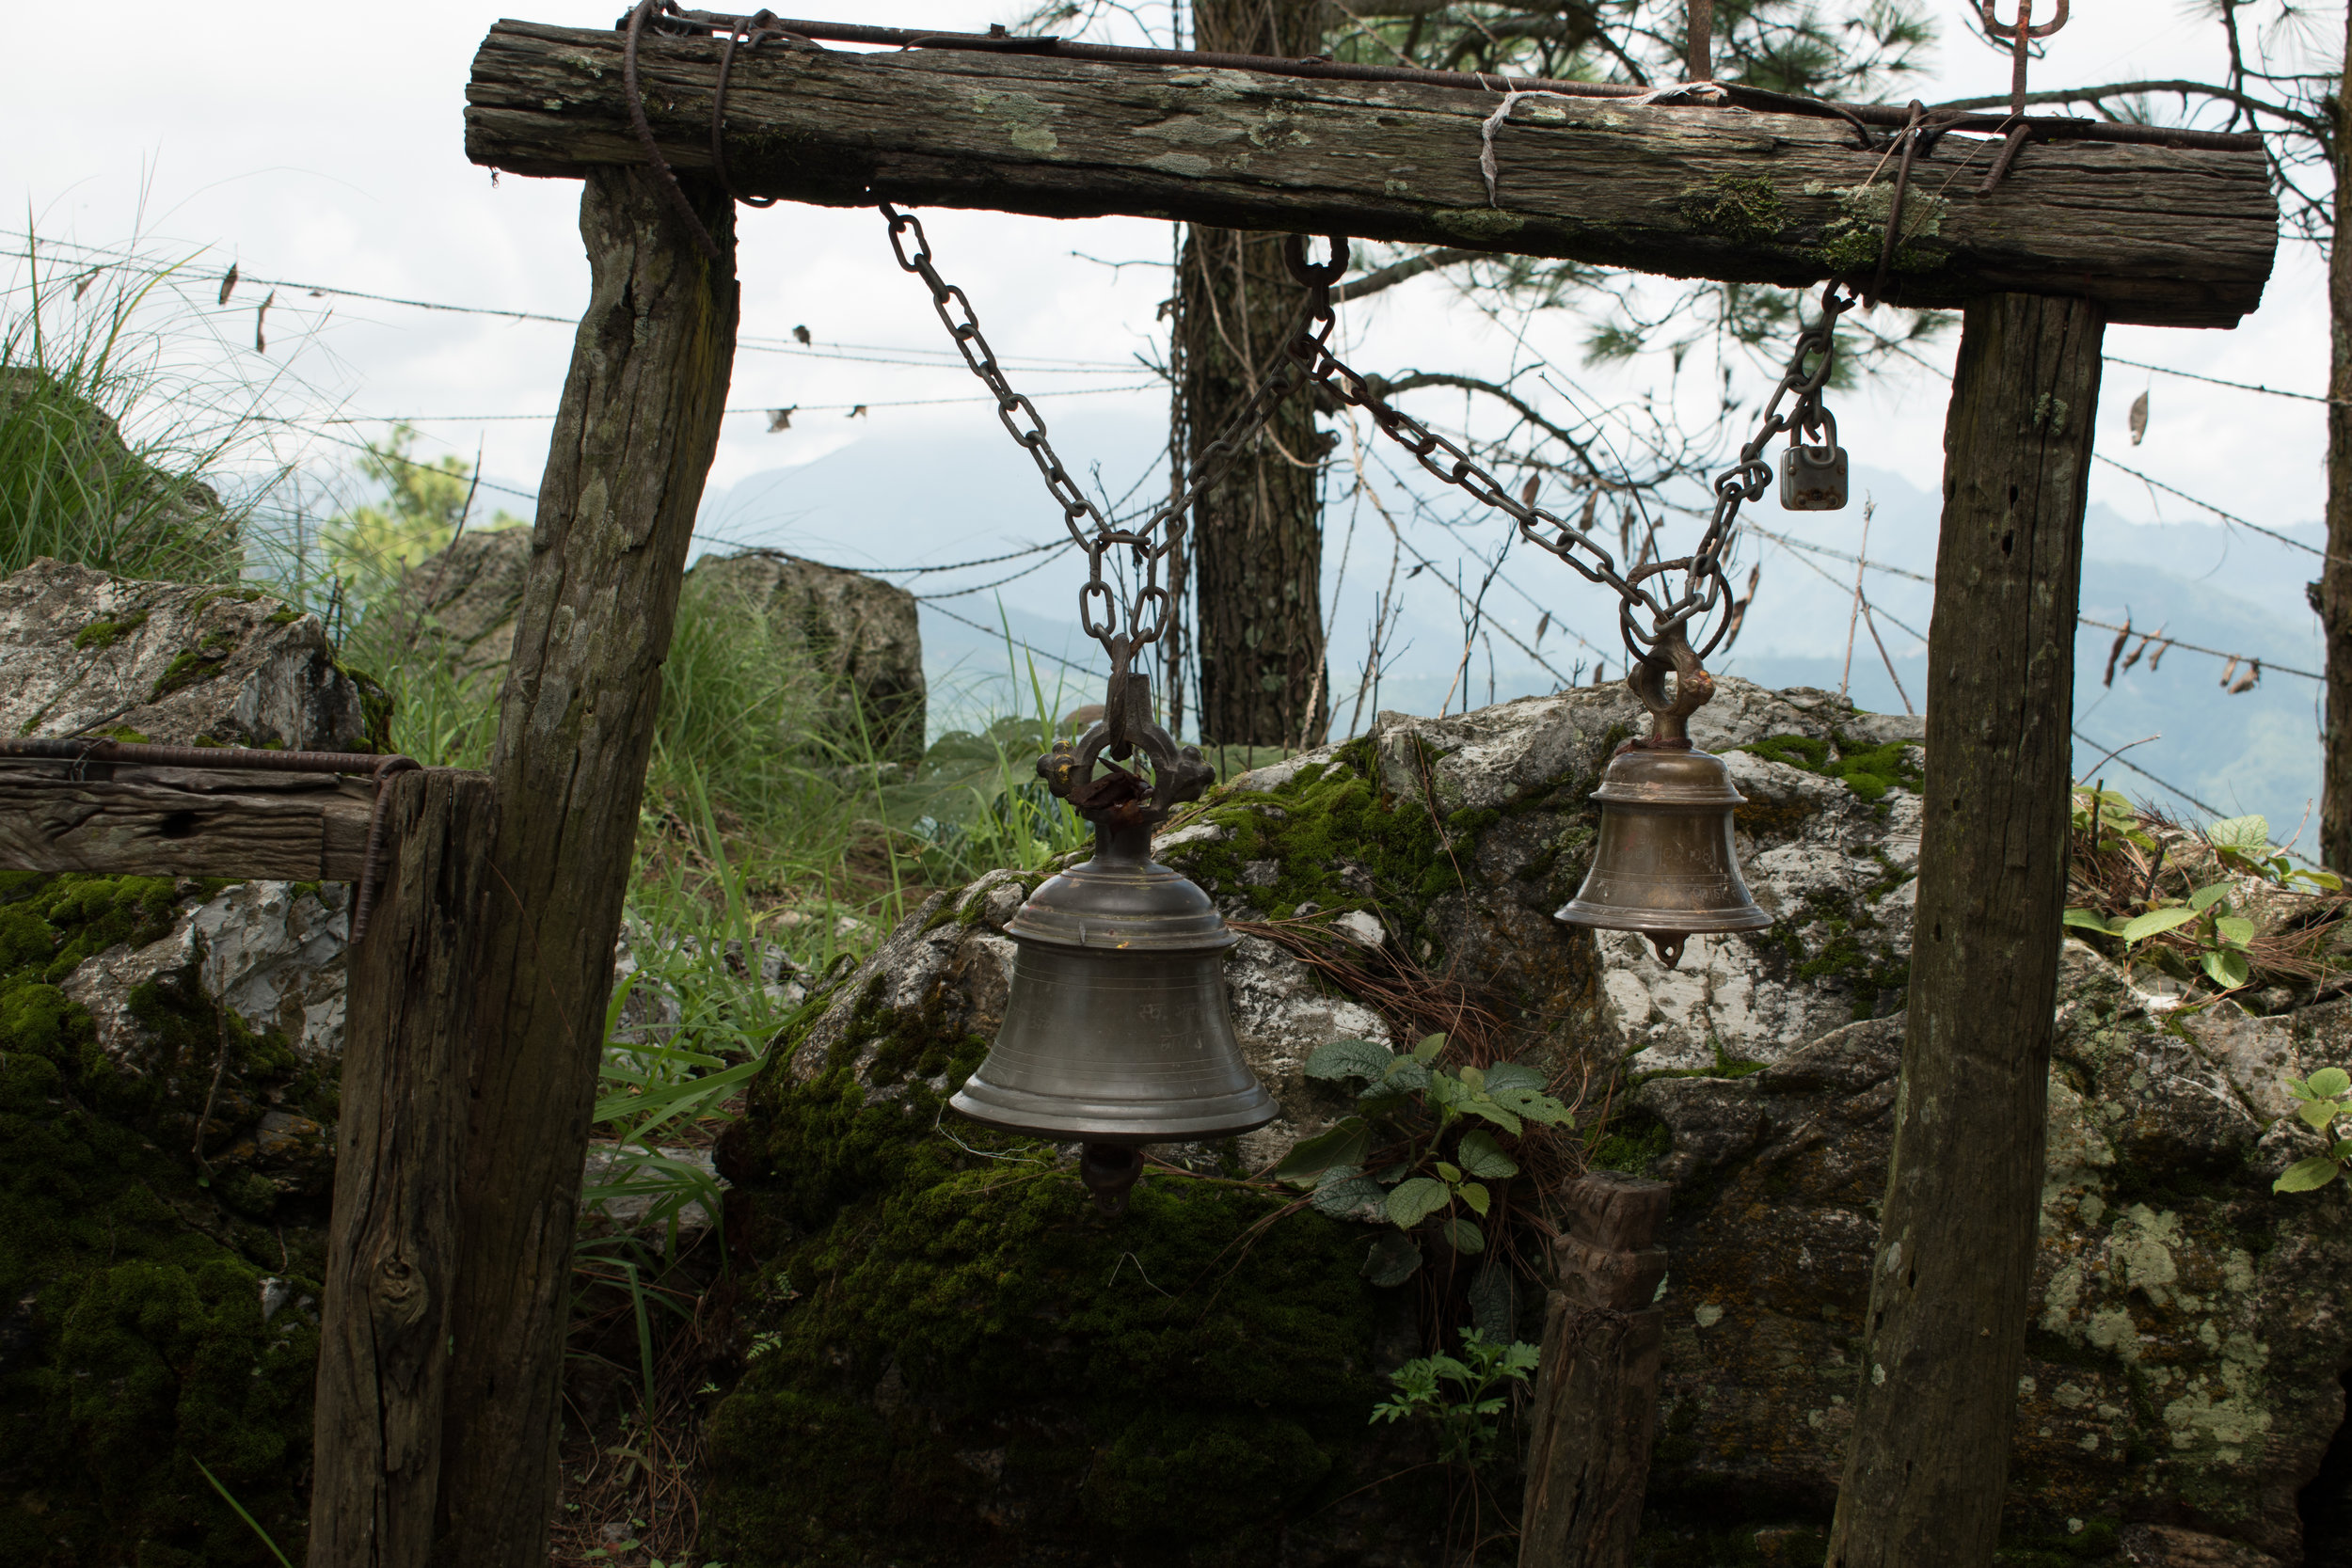 The Temple Bells in Bandipur, Nepal